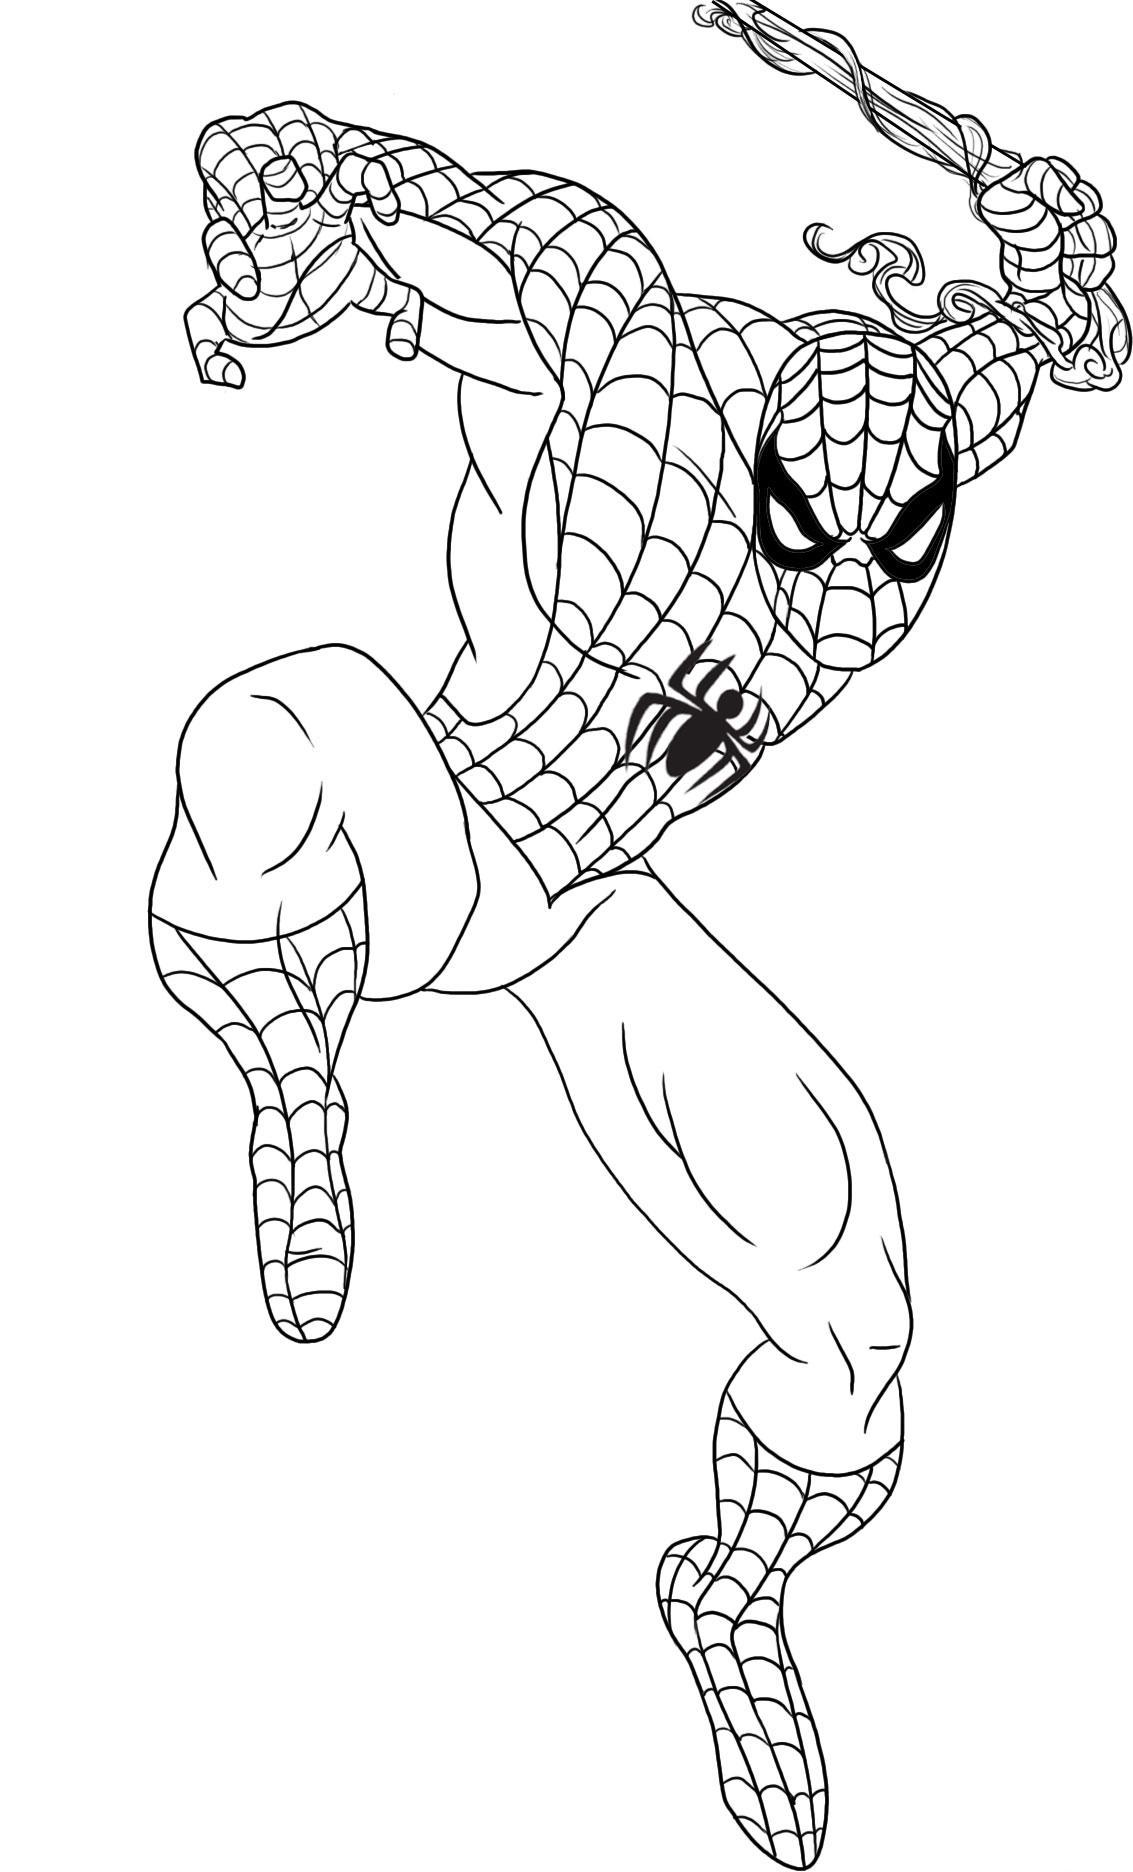 coloring pages for teenagers to print for free - free printable spiderman coloring pages for kids